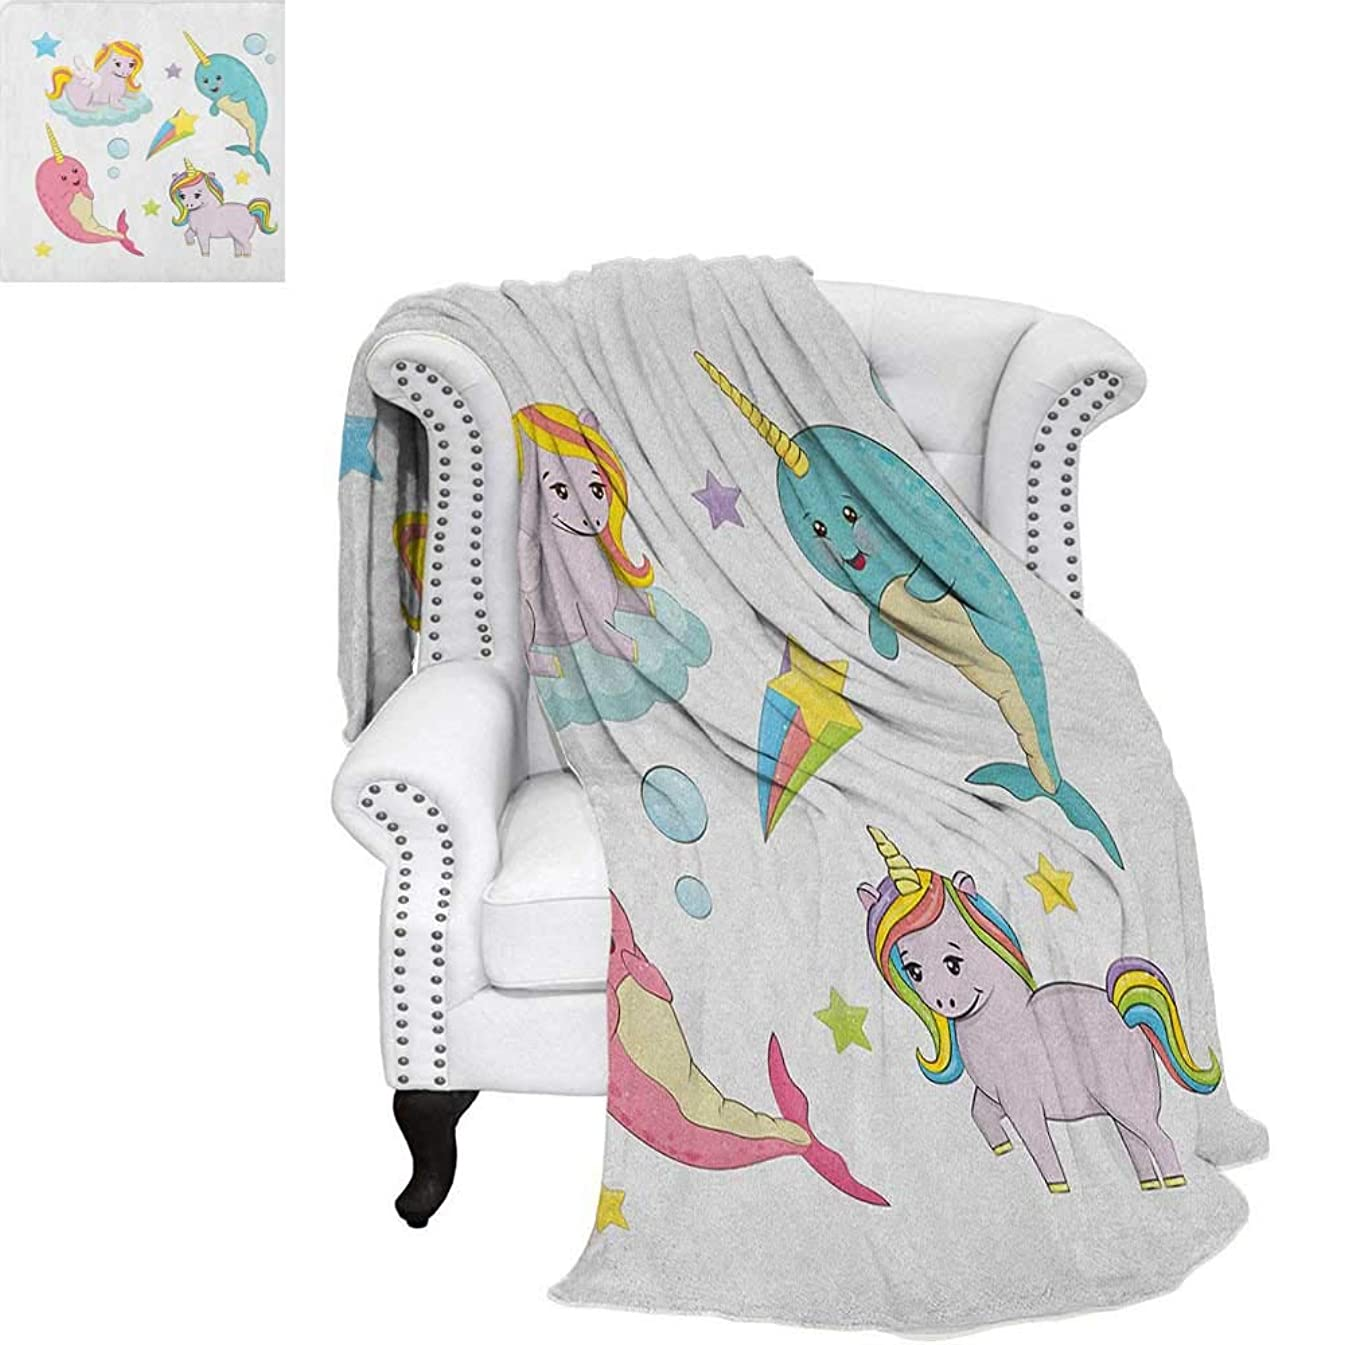 NarwhalFlannel blanketRainbow Colored Unicorns of The Land and Ocean Girly Illustration Colorful Cartooncouch Blanket 62